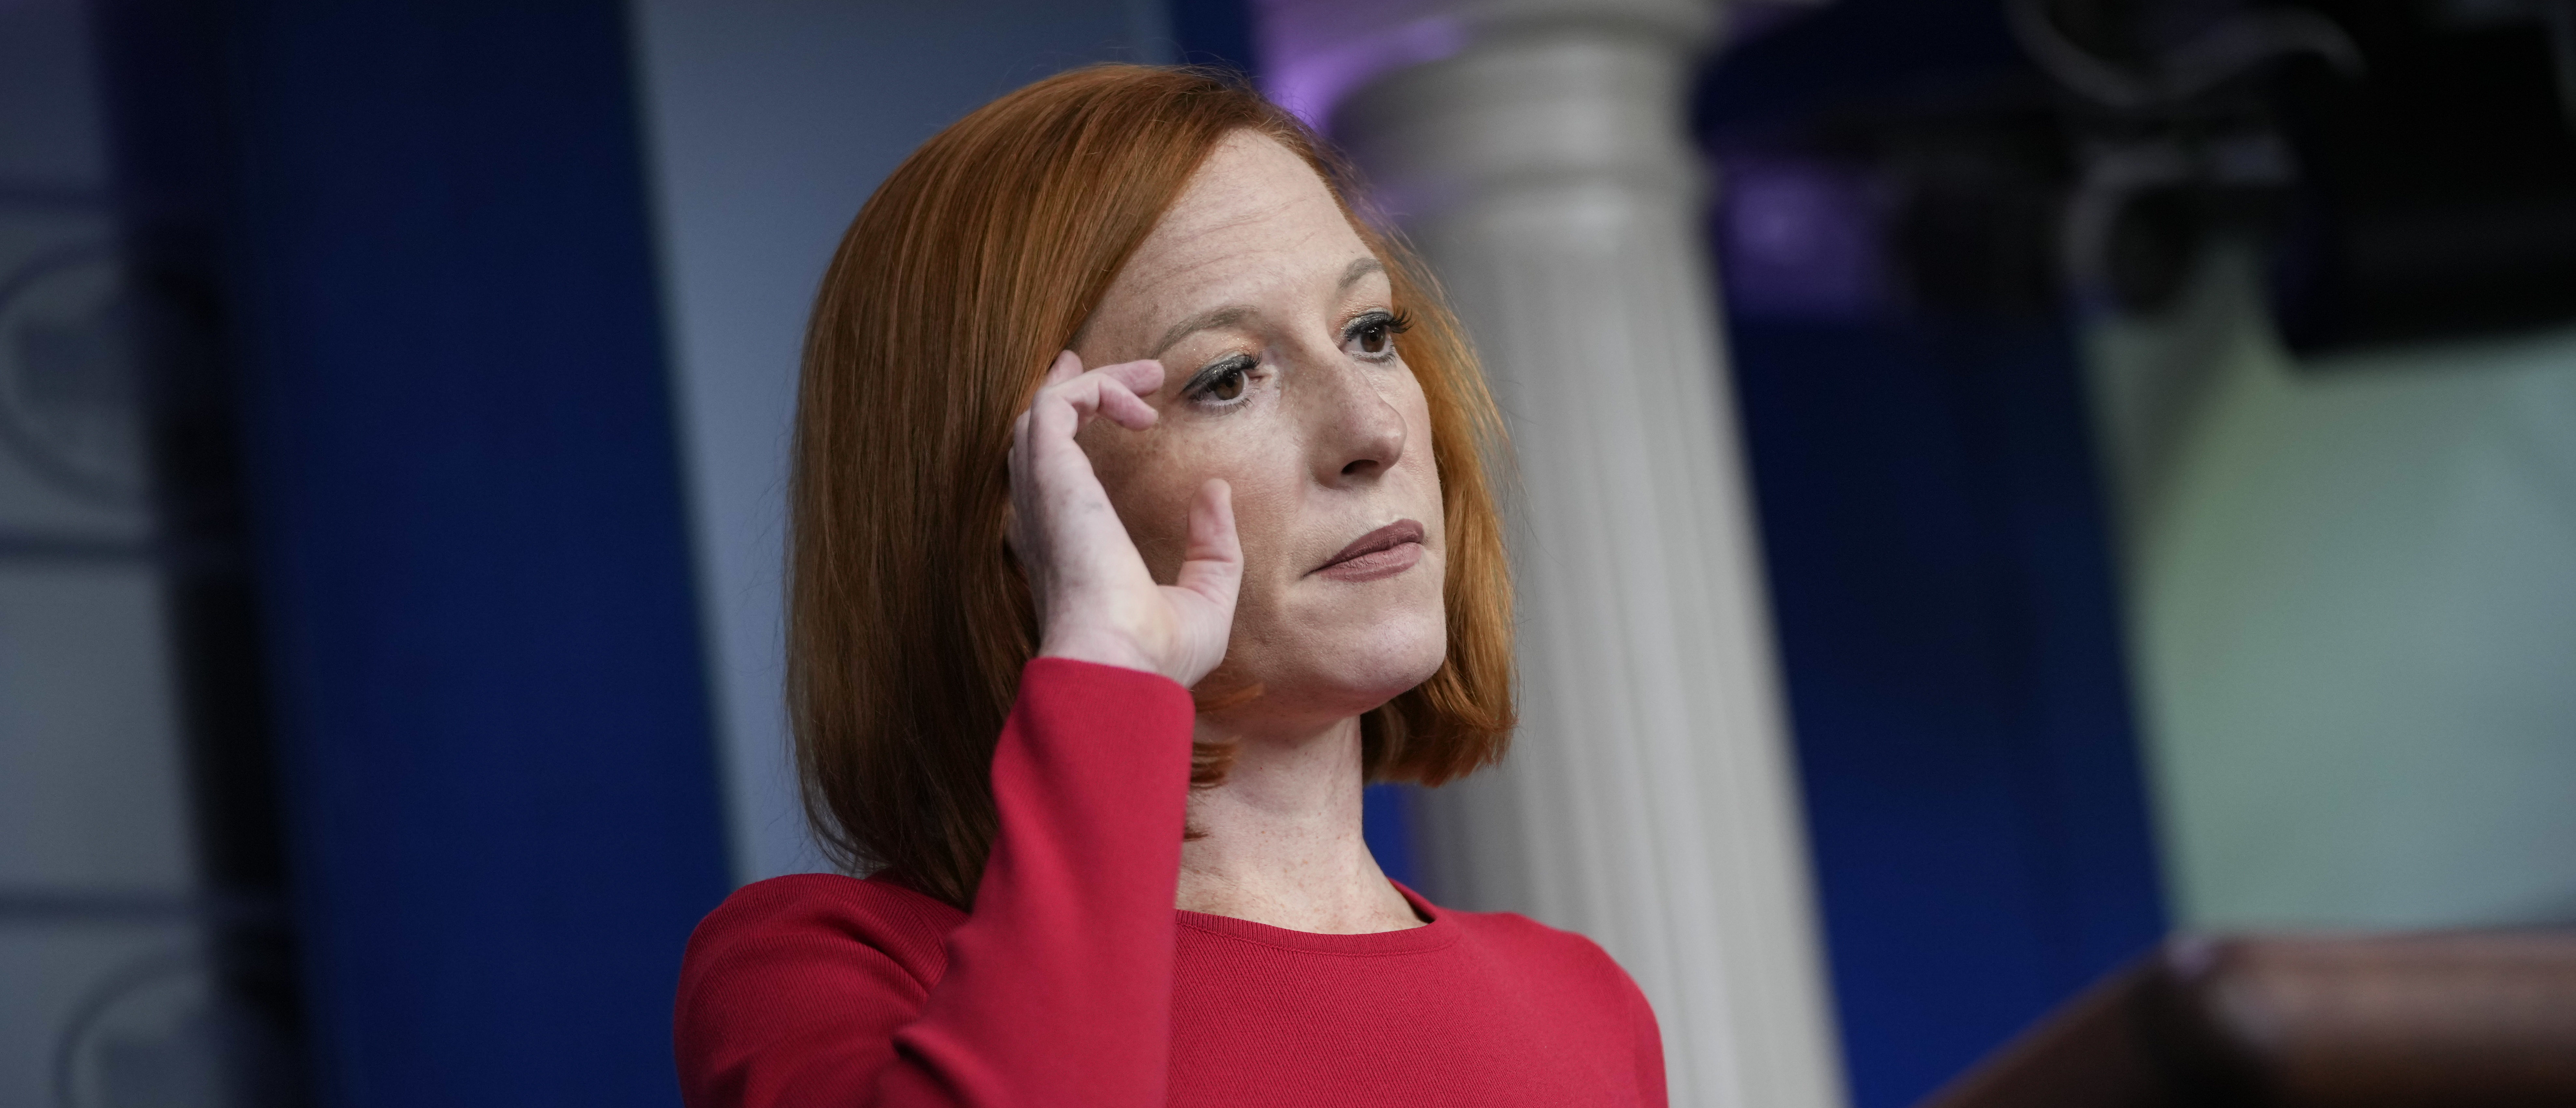 White House Press Secretary Jen Psaki speaks during the daily press briefing at the White House on August 25, 2021 in Washington, DC. The bulk of the questions she fielded from reporters were related to the ongoing evacuation efforts in Afghanistan. (Photo by Drew Angerer/Getty Images)